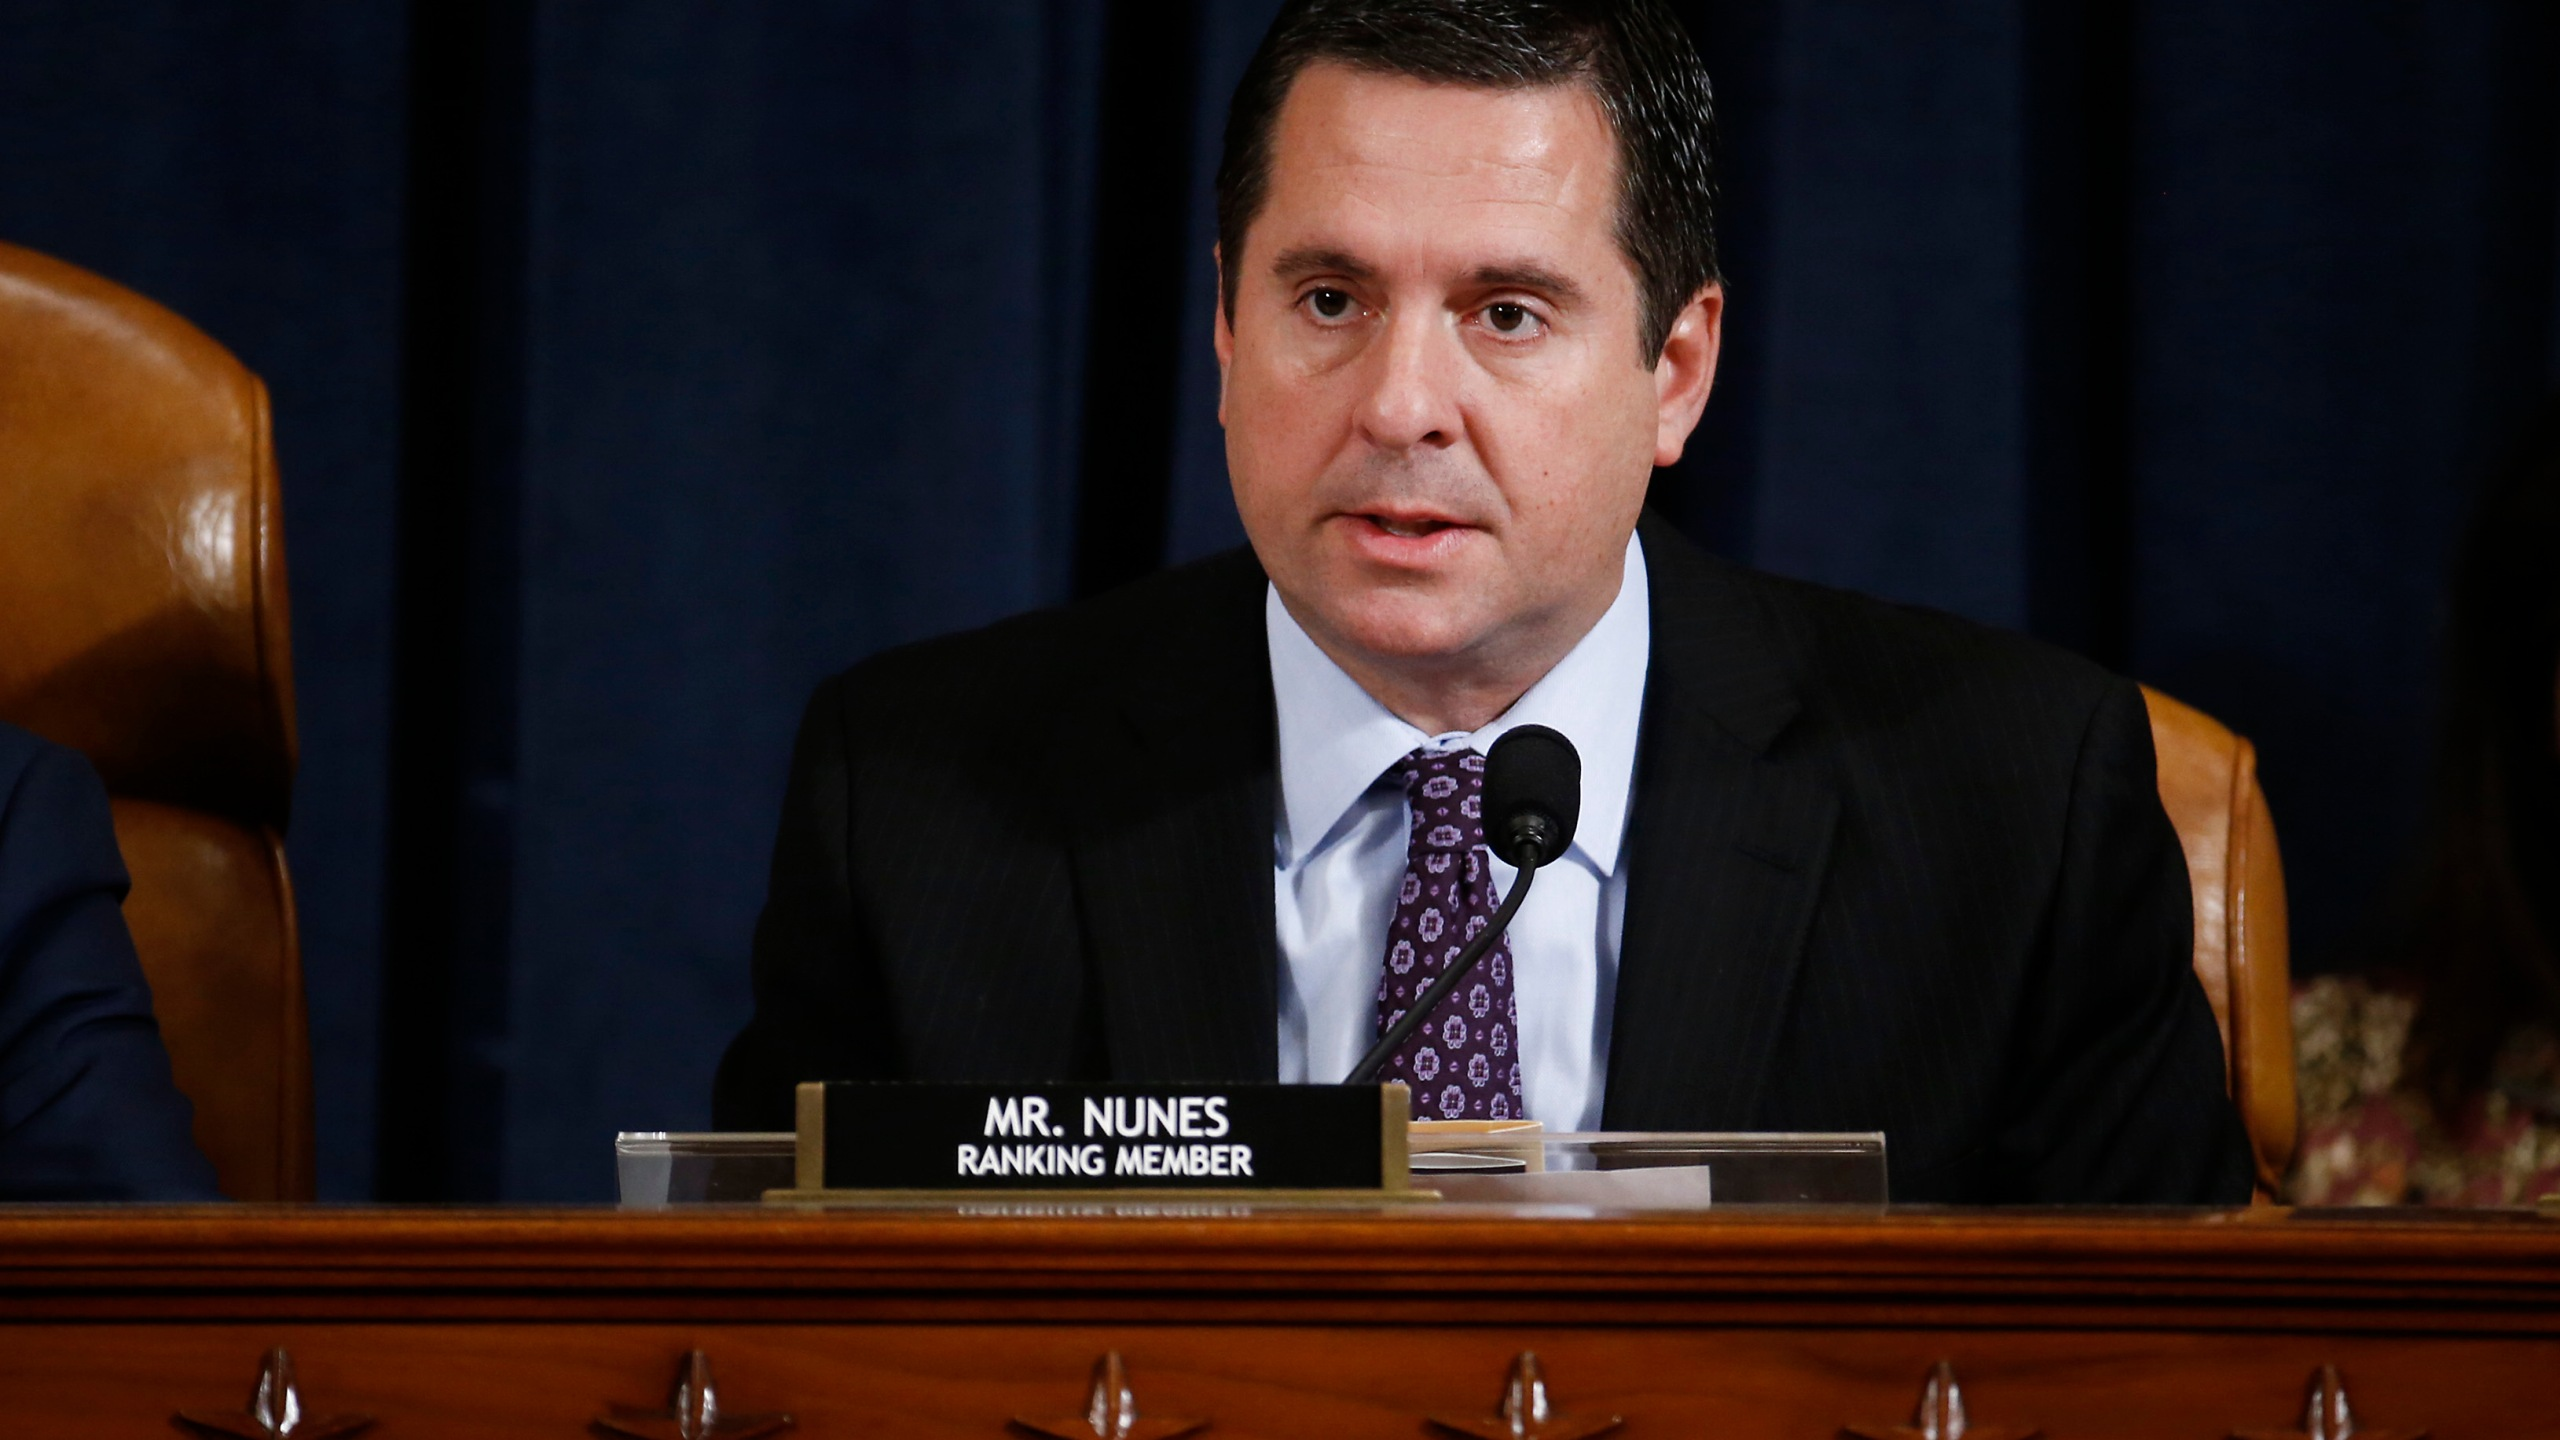 Rep. Devin Nunes, a California Republican and ranking member of the House Intelligence Committee, speaks during an impeachment inquiry hearing on Nov. 21, 2019. (Credit: Andrew Harrer / Getty Images)